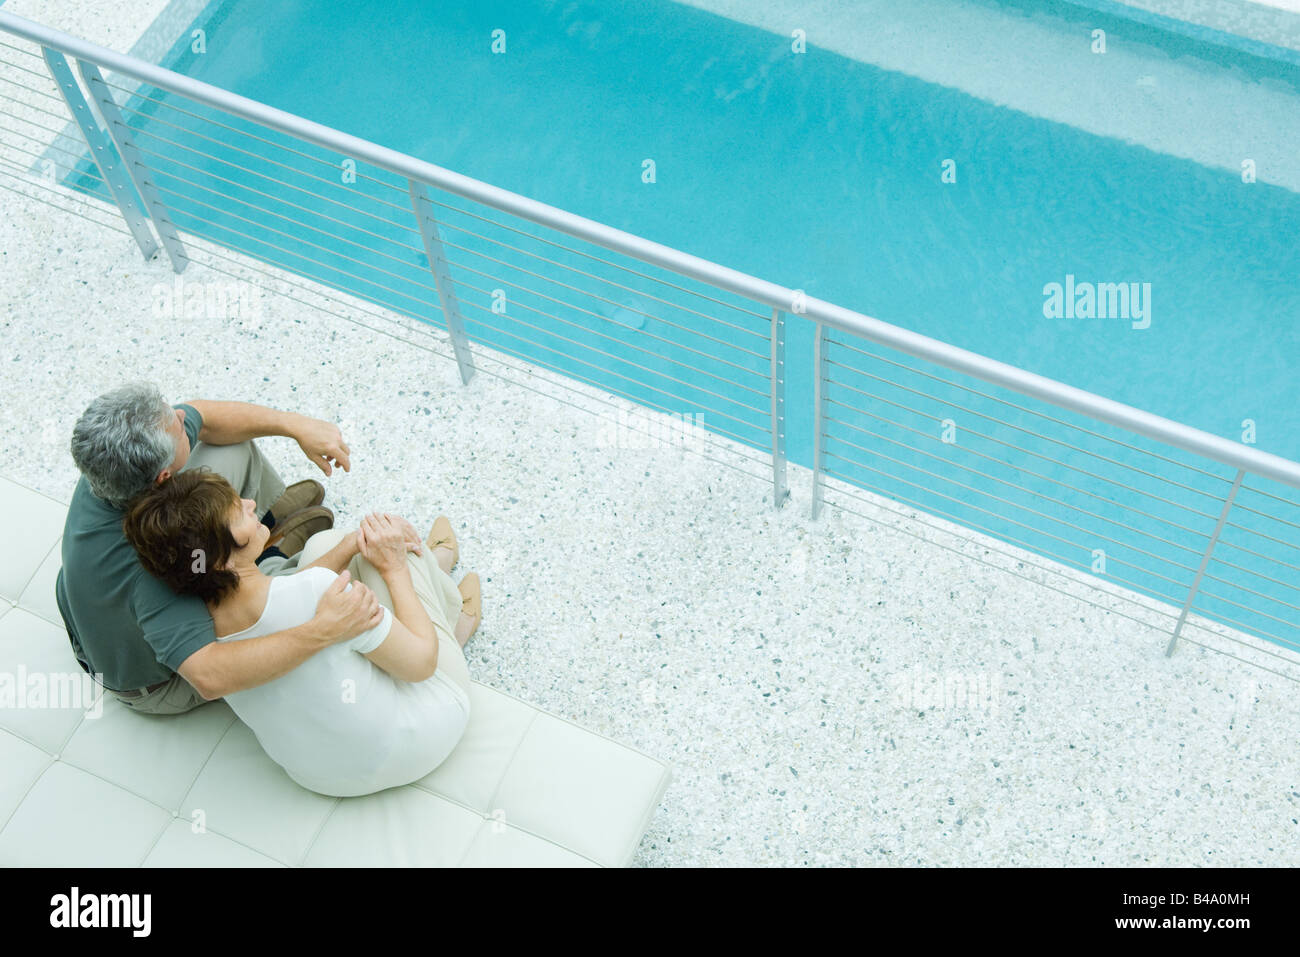 Husband and wife sitting by pool, his arm around her shoulder, her head on his - Stock Image